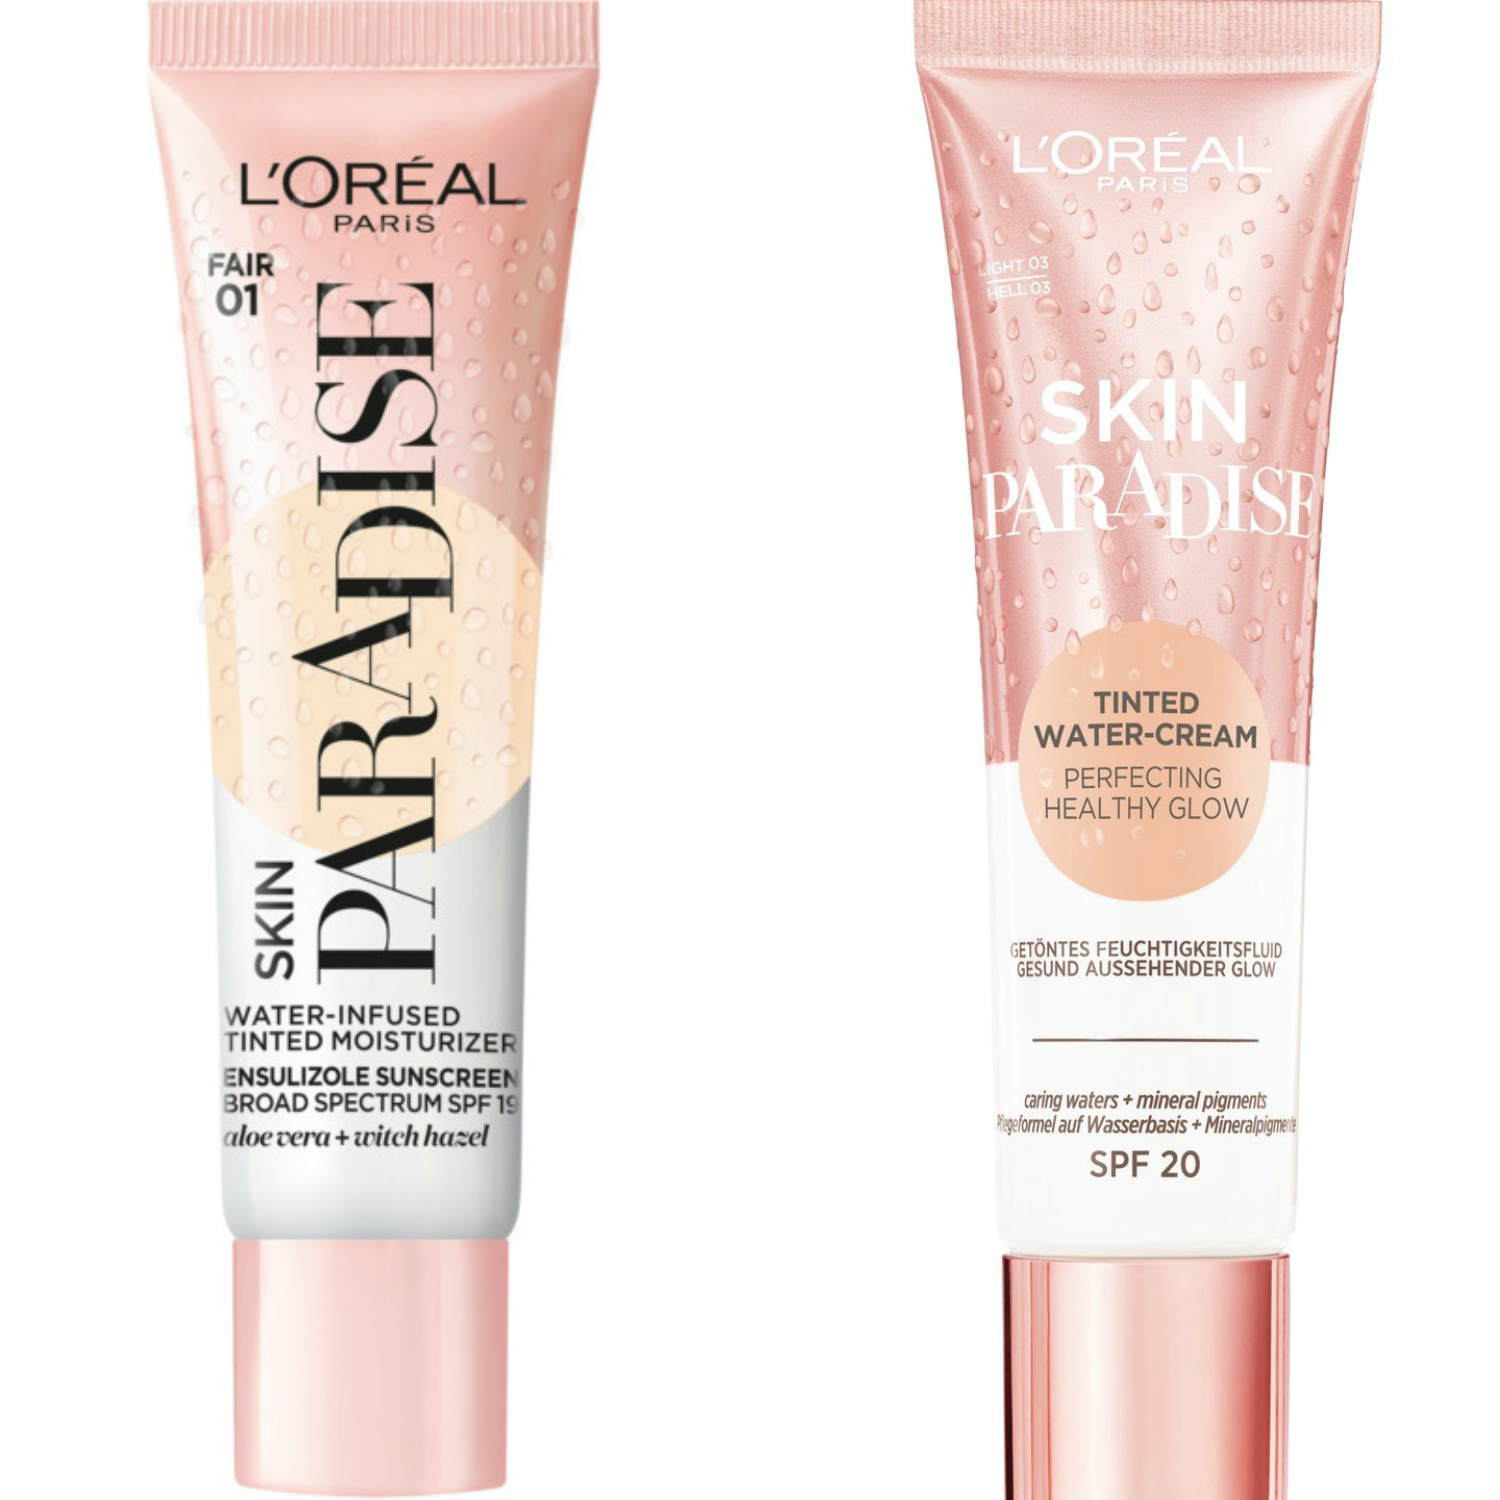 L'Oréal Skin Paradise Water Infused Tinted Moisturizer